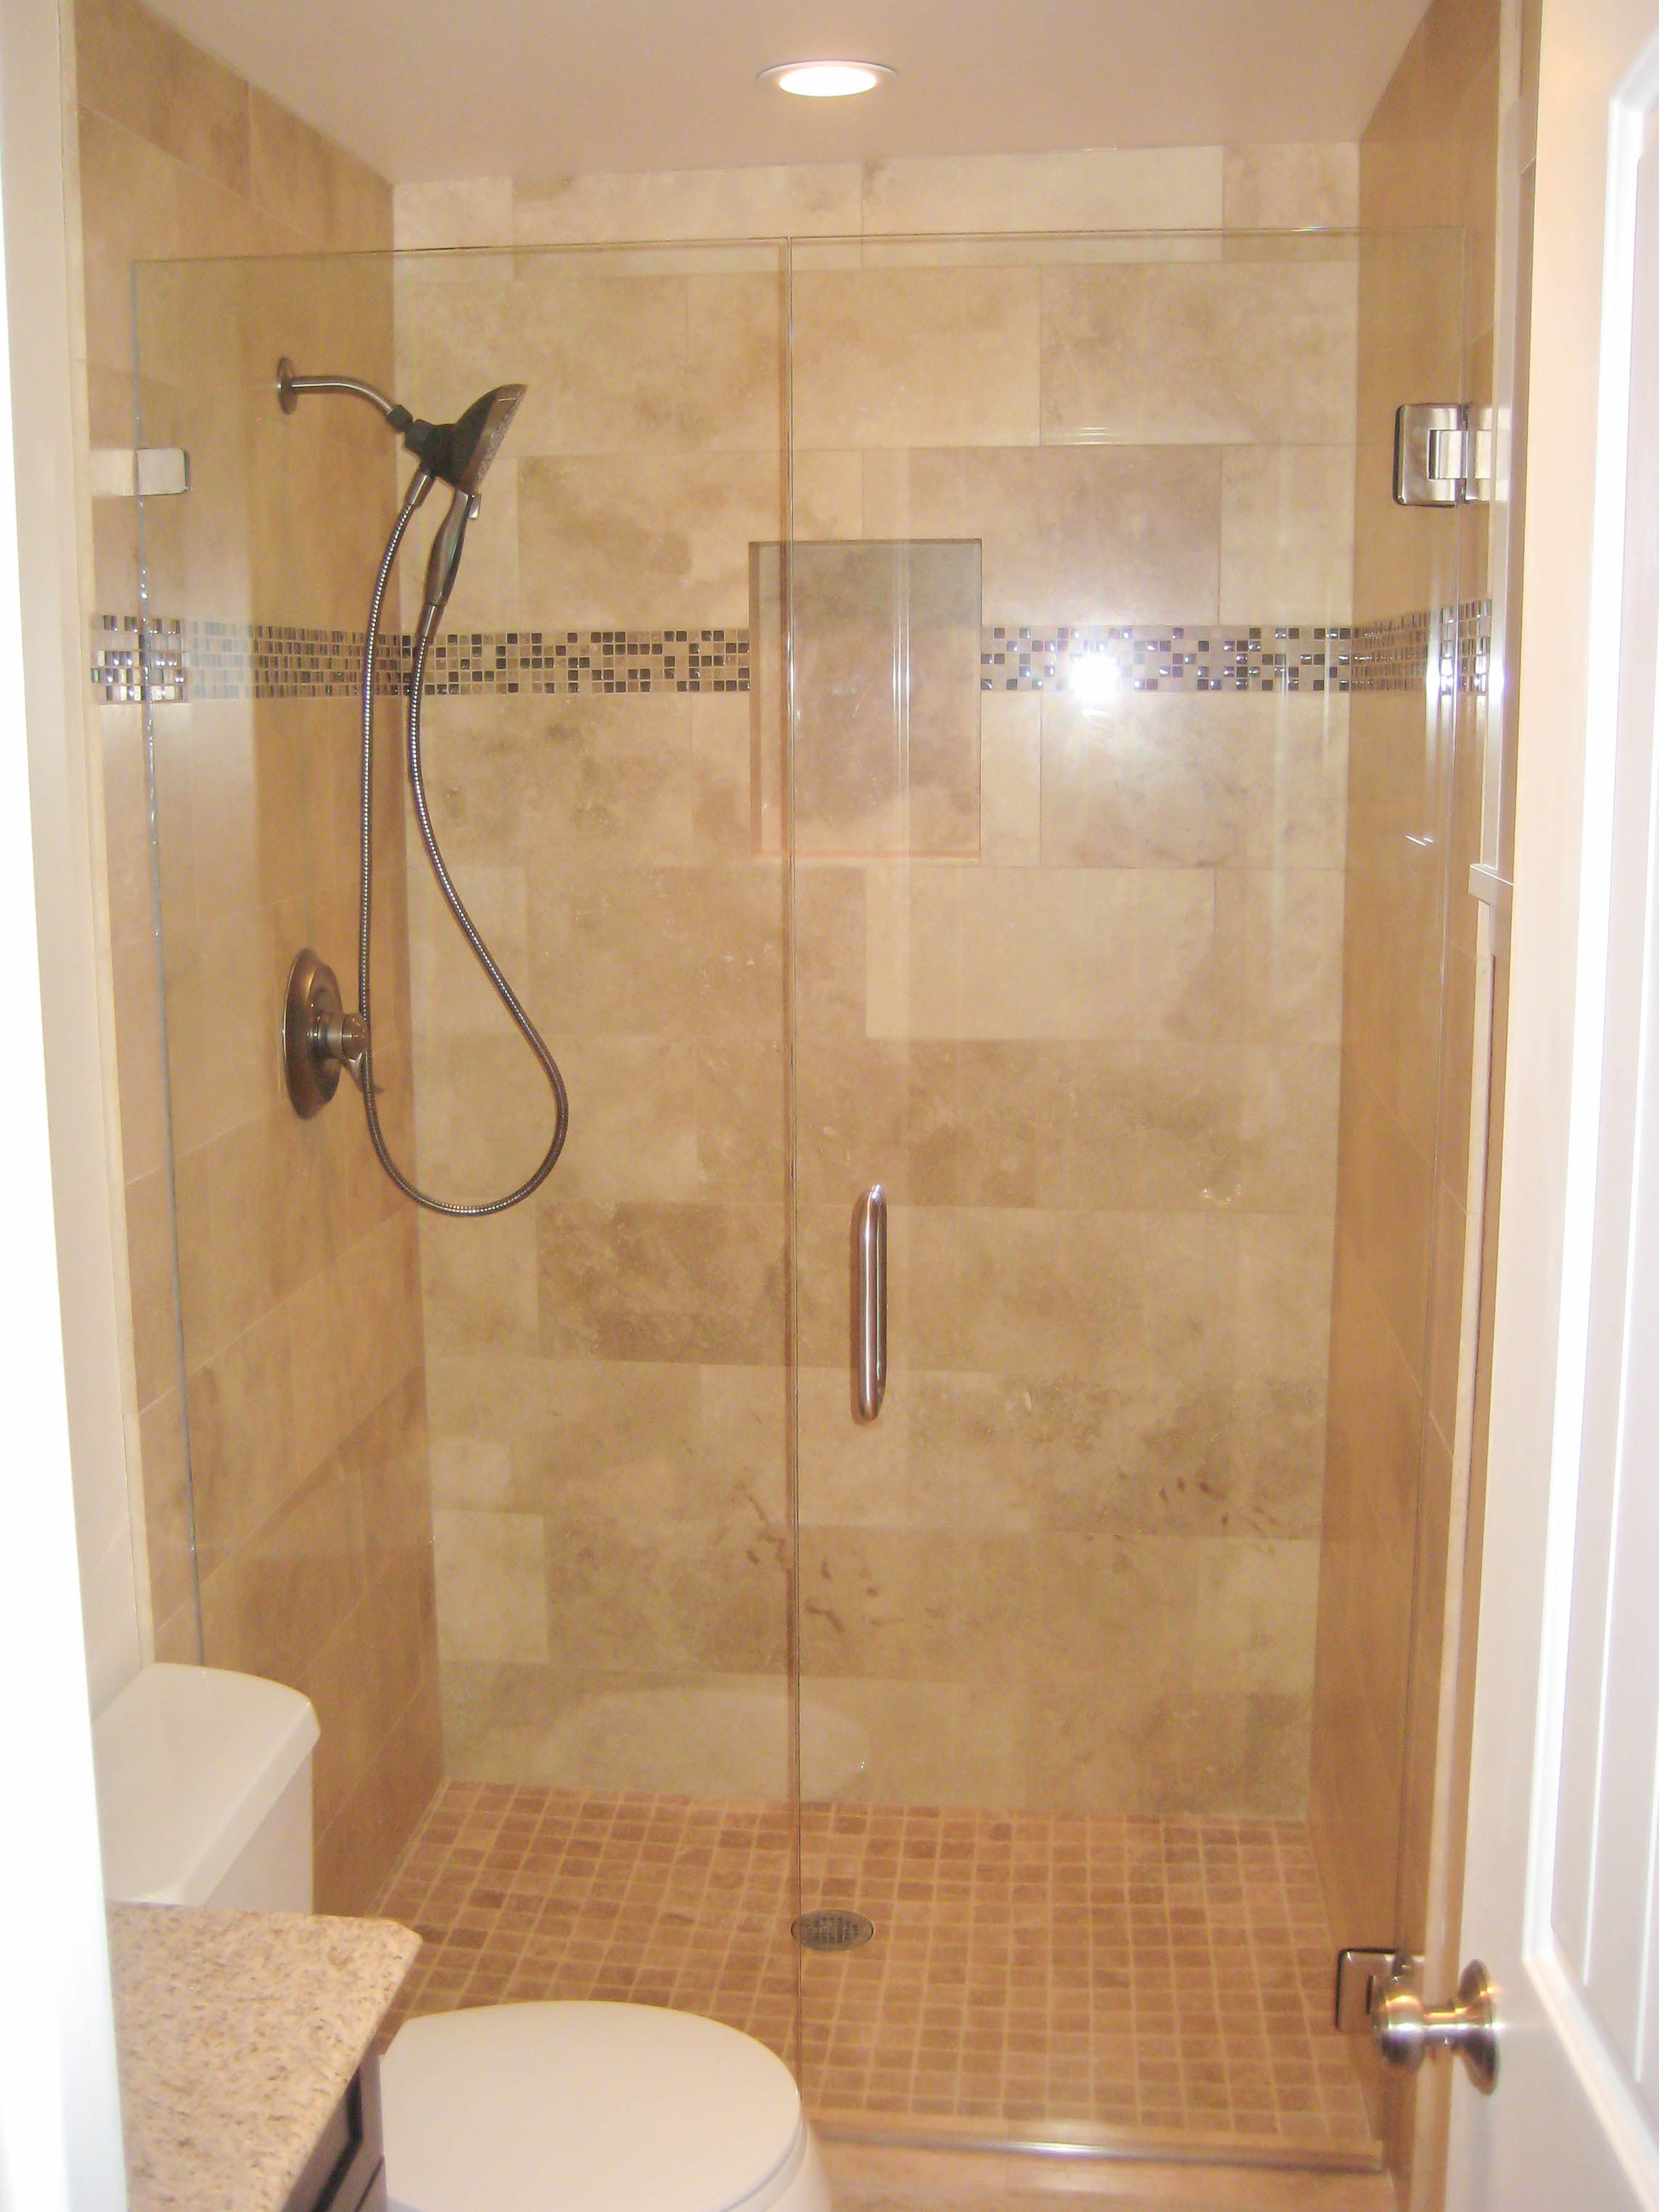 bathroom showers photos seattle tile contractor irc photos bathroom shower ideas design bath shower tile